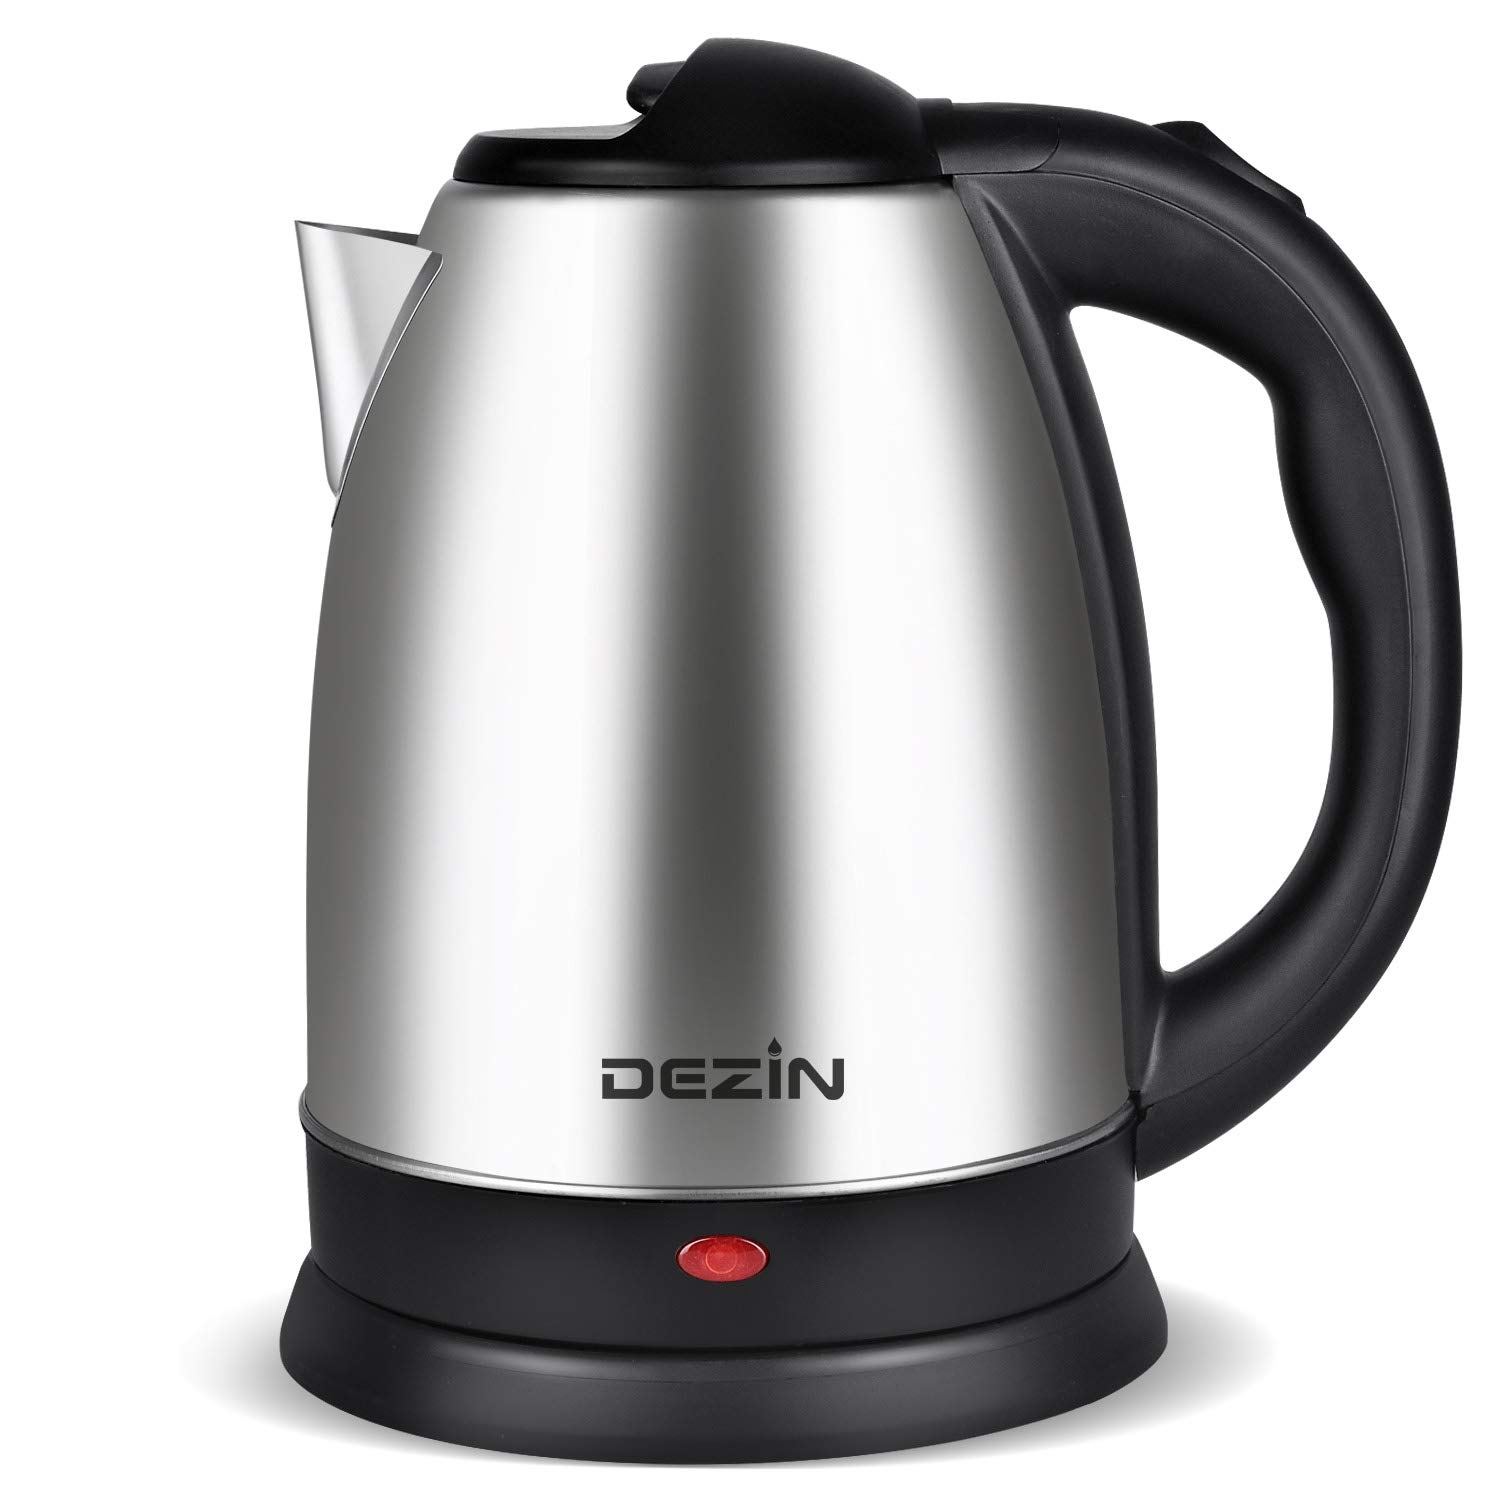 Dezin Electric Kettle Water Heater, 2L Stainless Steel Cordless Tea Kettle, Fast Boil, Auto Shut Off and Boil Dry Protection Tech – Base on SIDE Concept (Simple, Inexpensive, Dependable and Effective)